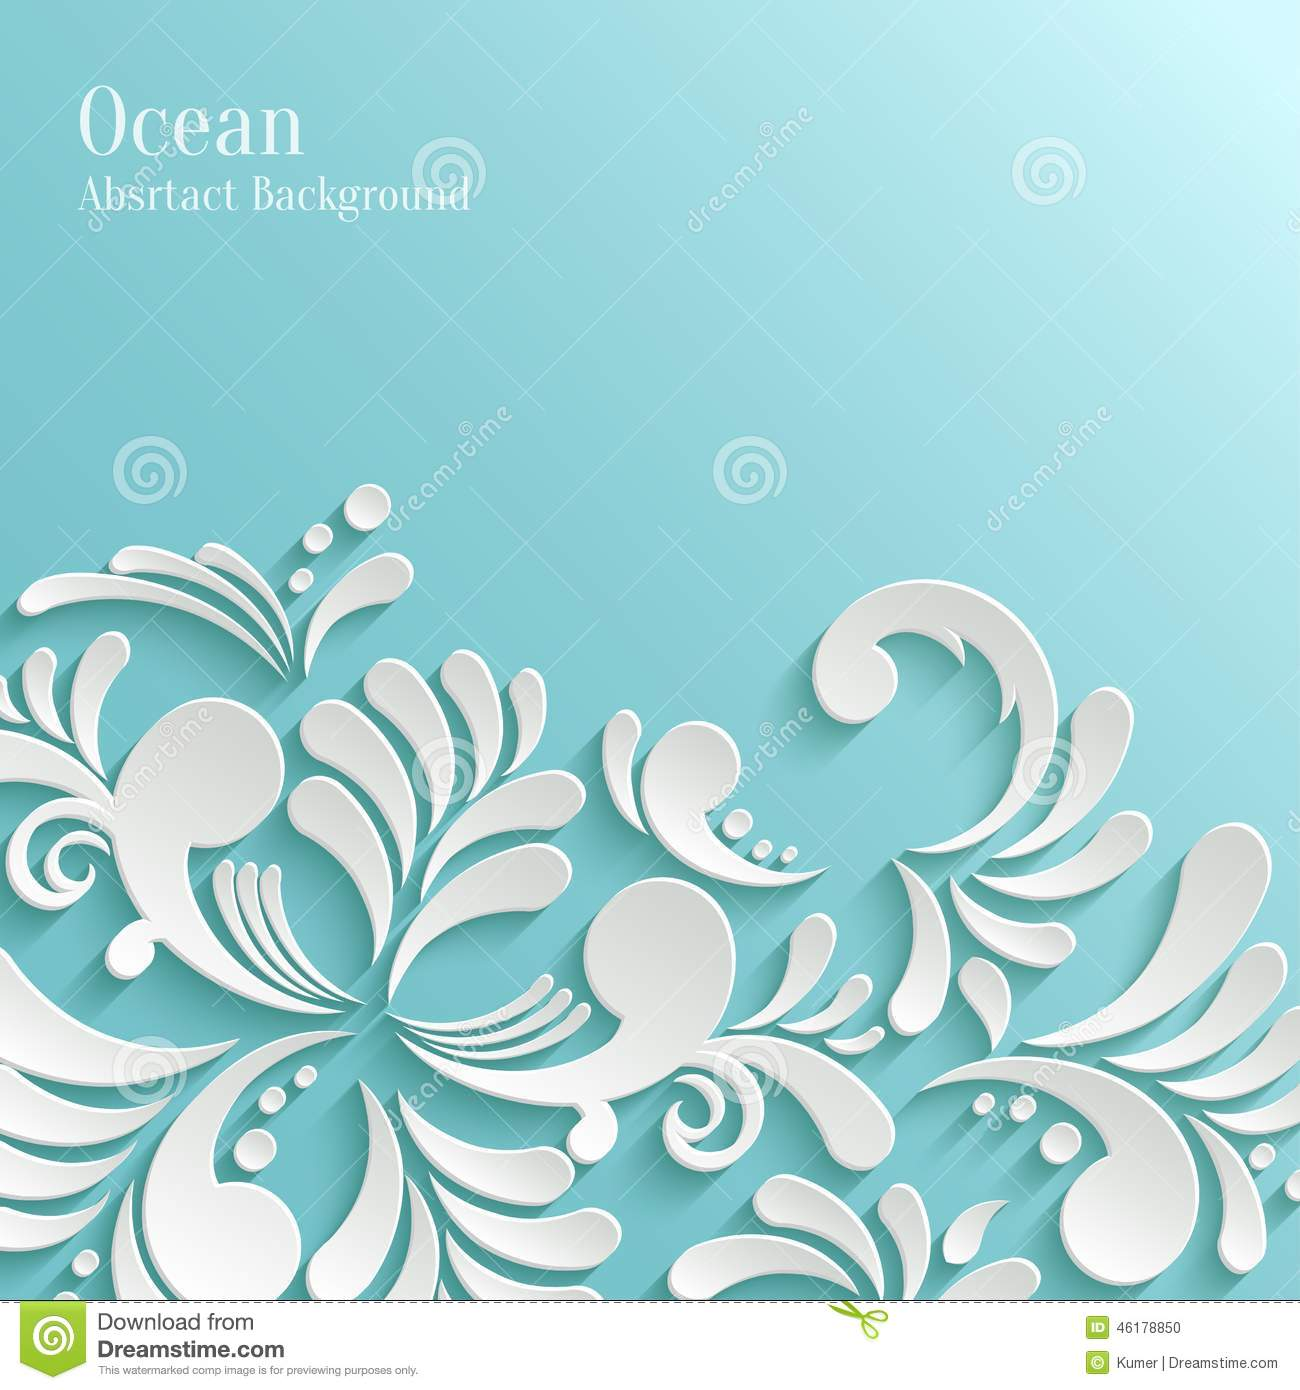 Abstract Ocean Background With 3d Floral Pattern Stock ...